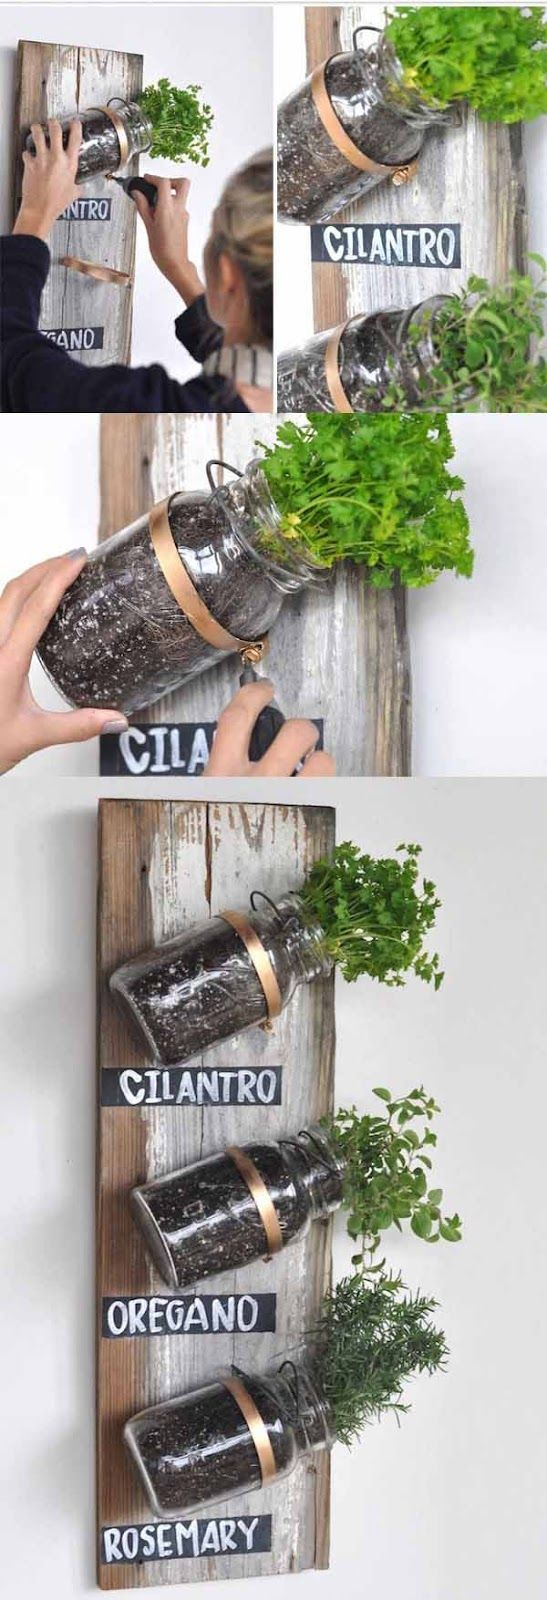 Great garden idea using mason jars